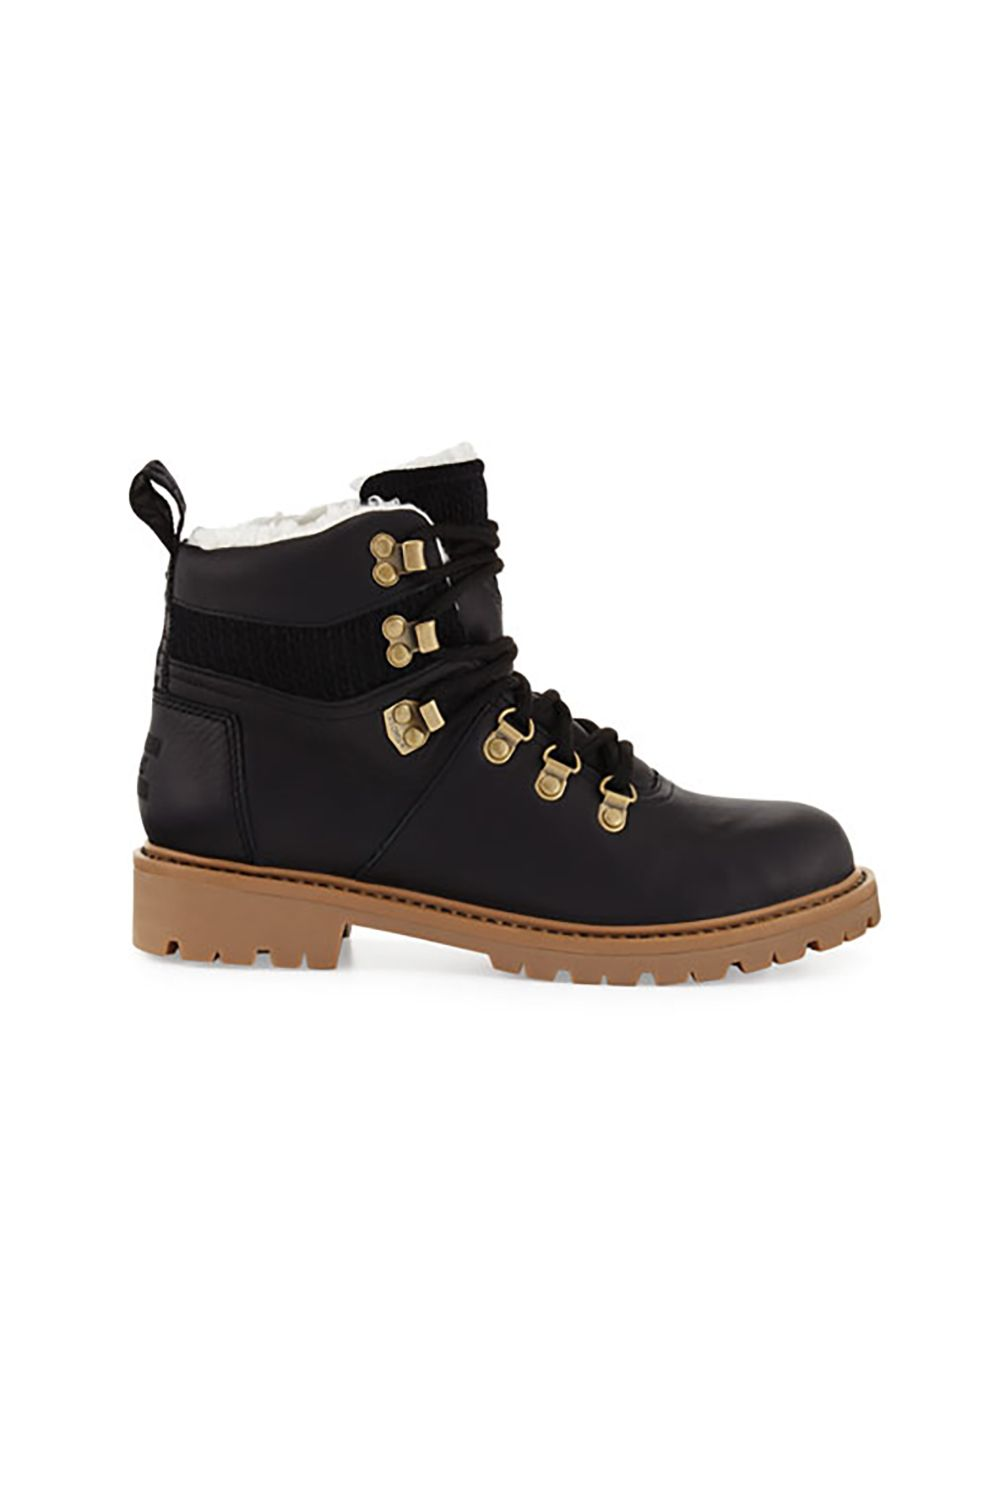 Watch 12 Chic Snow Boots You'll Actually Want to Wear video